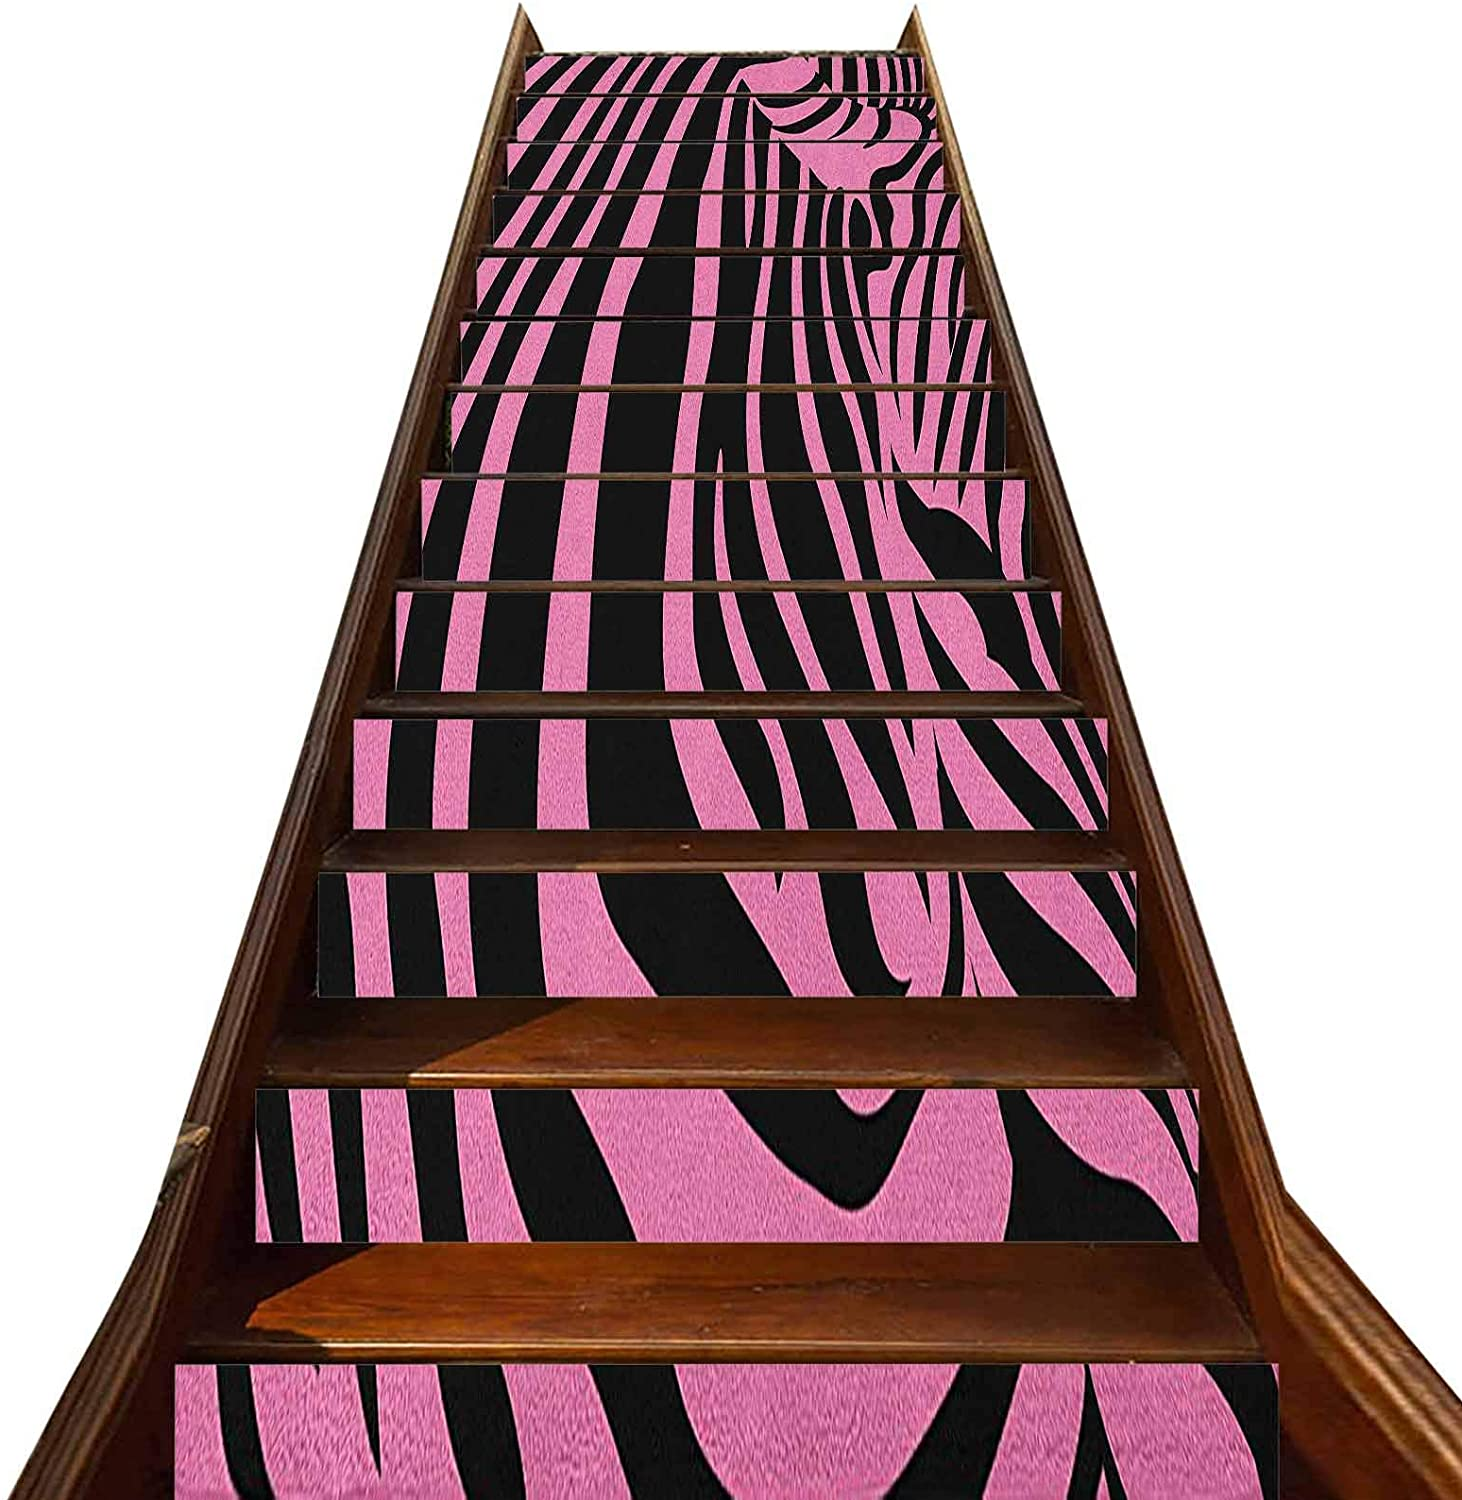 3D Pink Zebra Stair Stickers Decals-13Pcs/Set,Vibrant Background Zebra Skin Artistic Avant Garde Tribal Punk Indie Wild Stair Treads Decals Removable Staircase murals,for Stair Sticker Home Decor